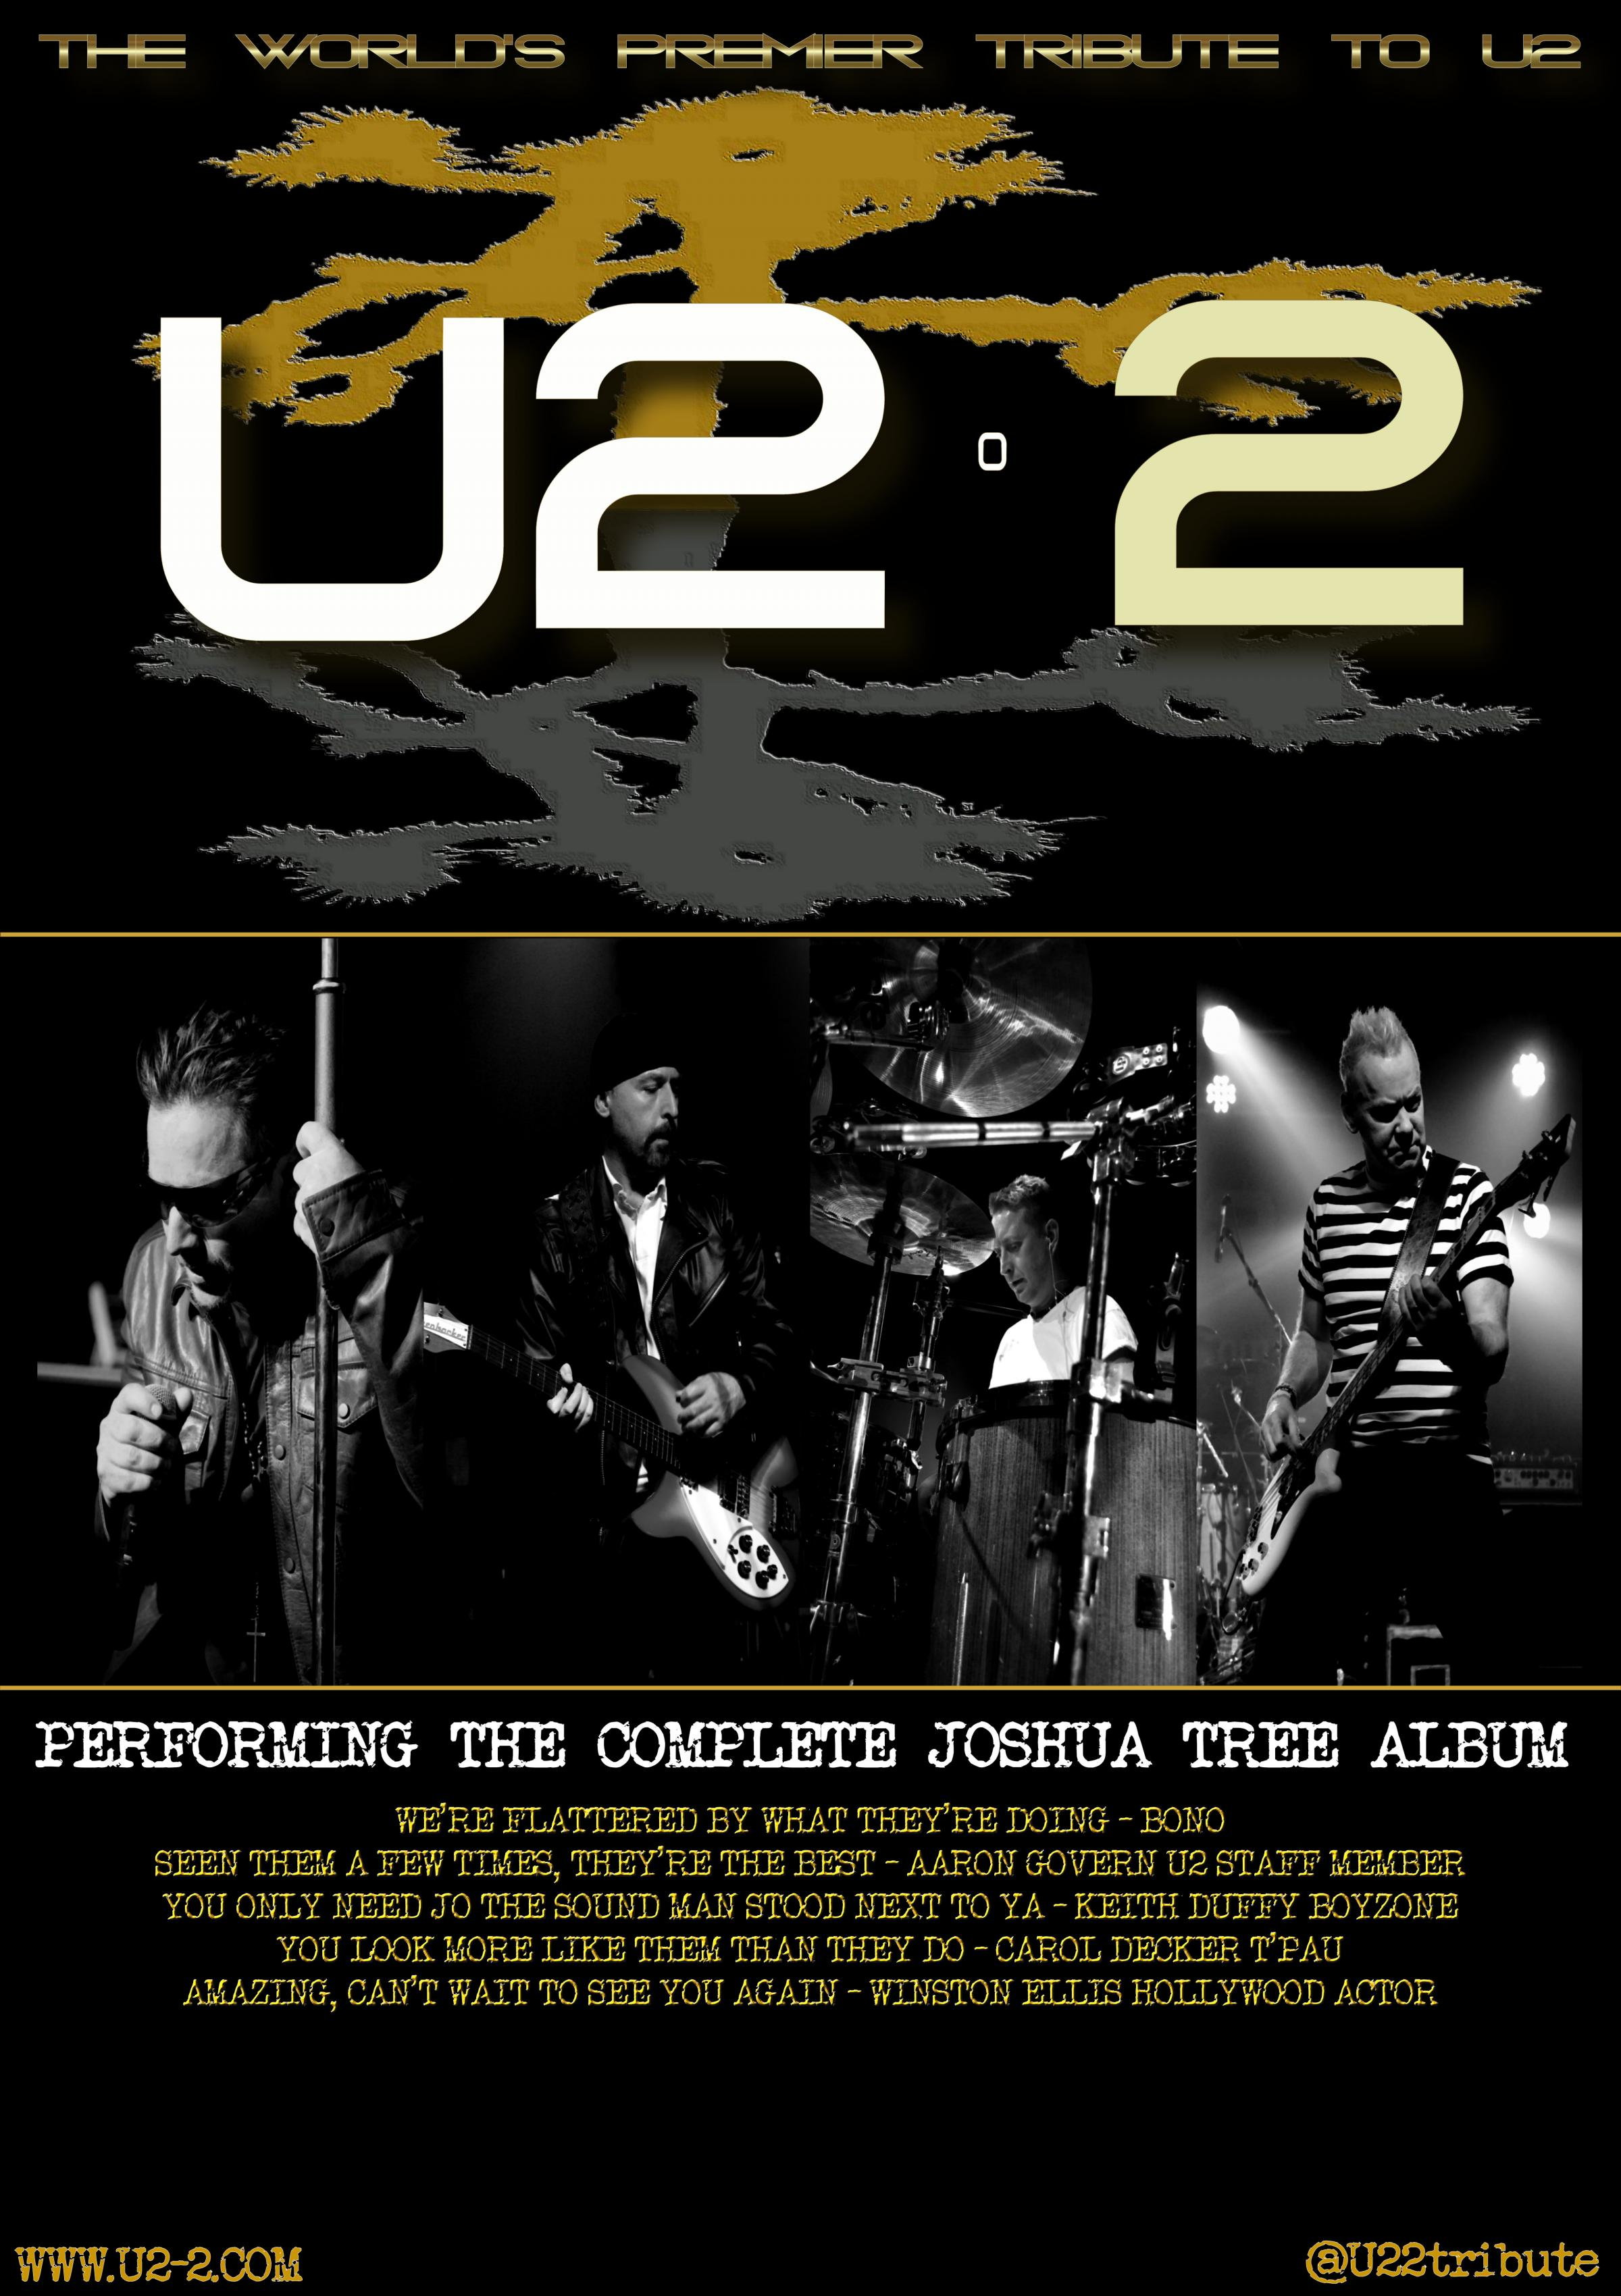 U2 2 present The Joshua Tree album show